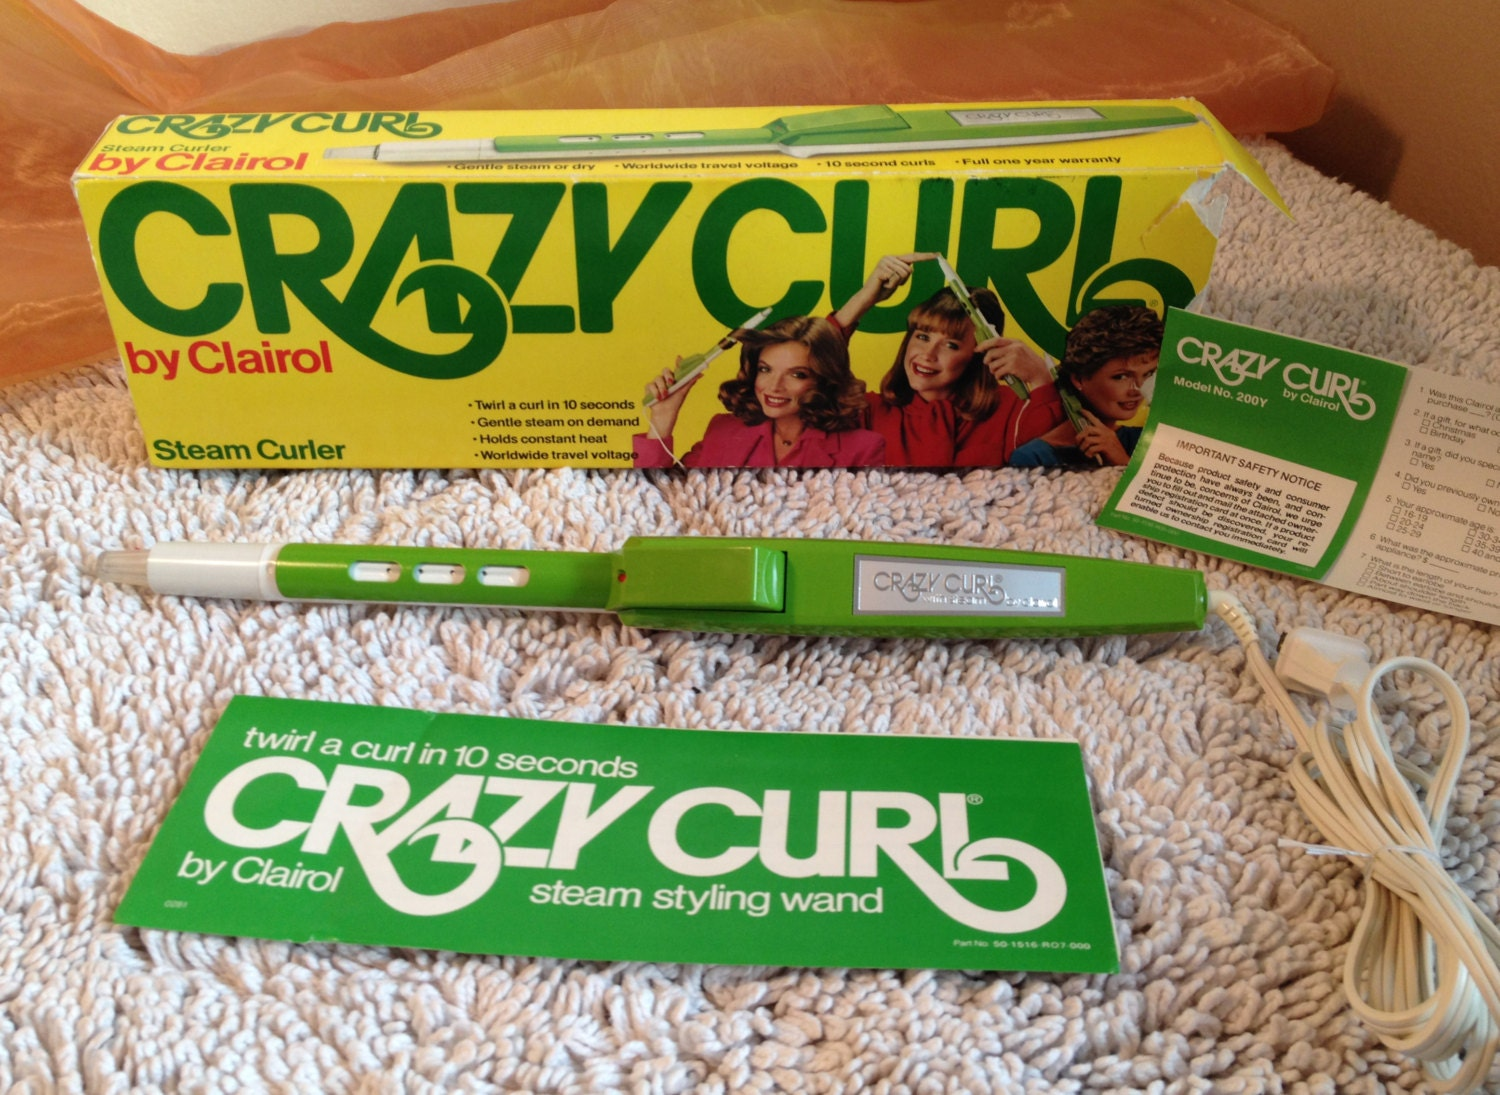 Vintage Clairol Crazy Curl Curling Iron With The Original Box